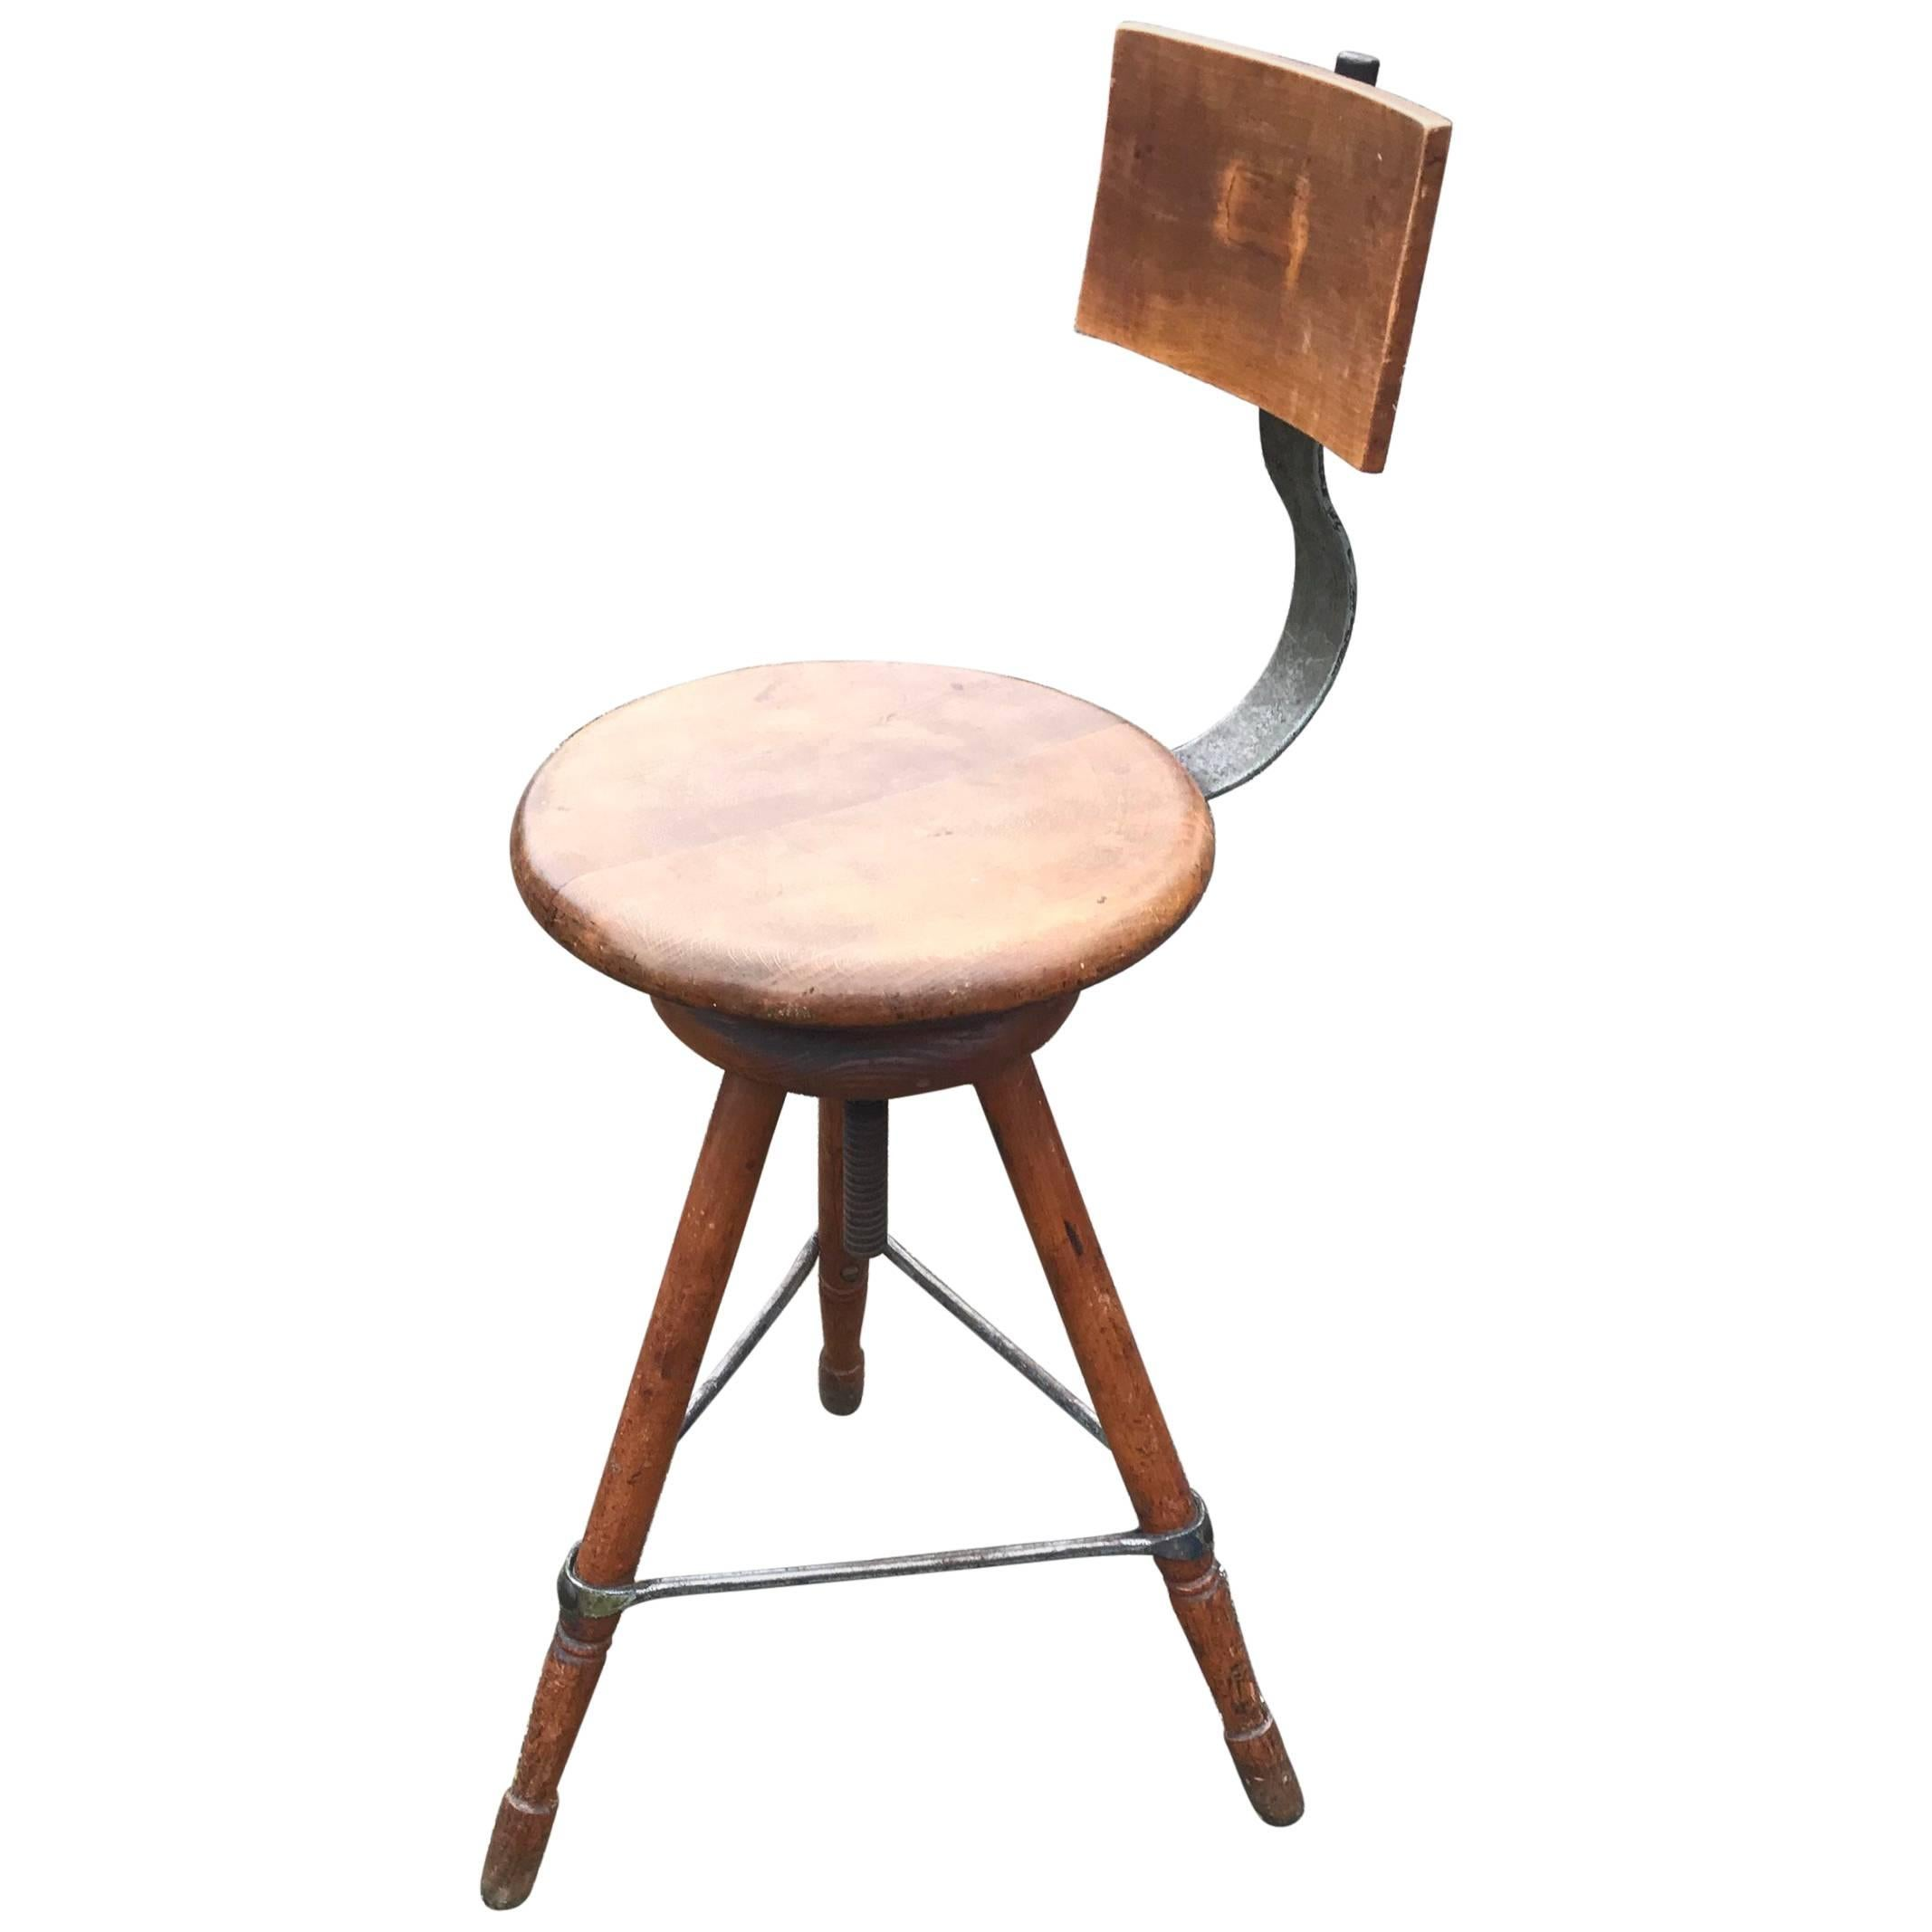 Rare Industrial Artist Studio Spindle Chair Or Stool Adjustable In Height,  1920s For Sale